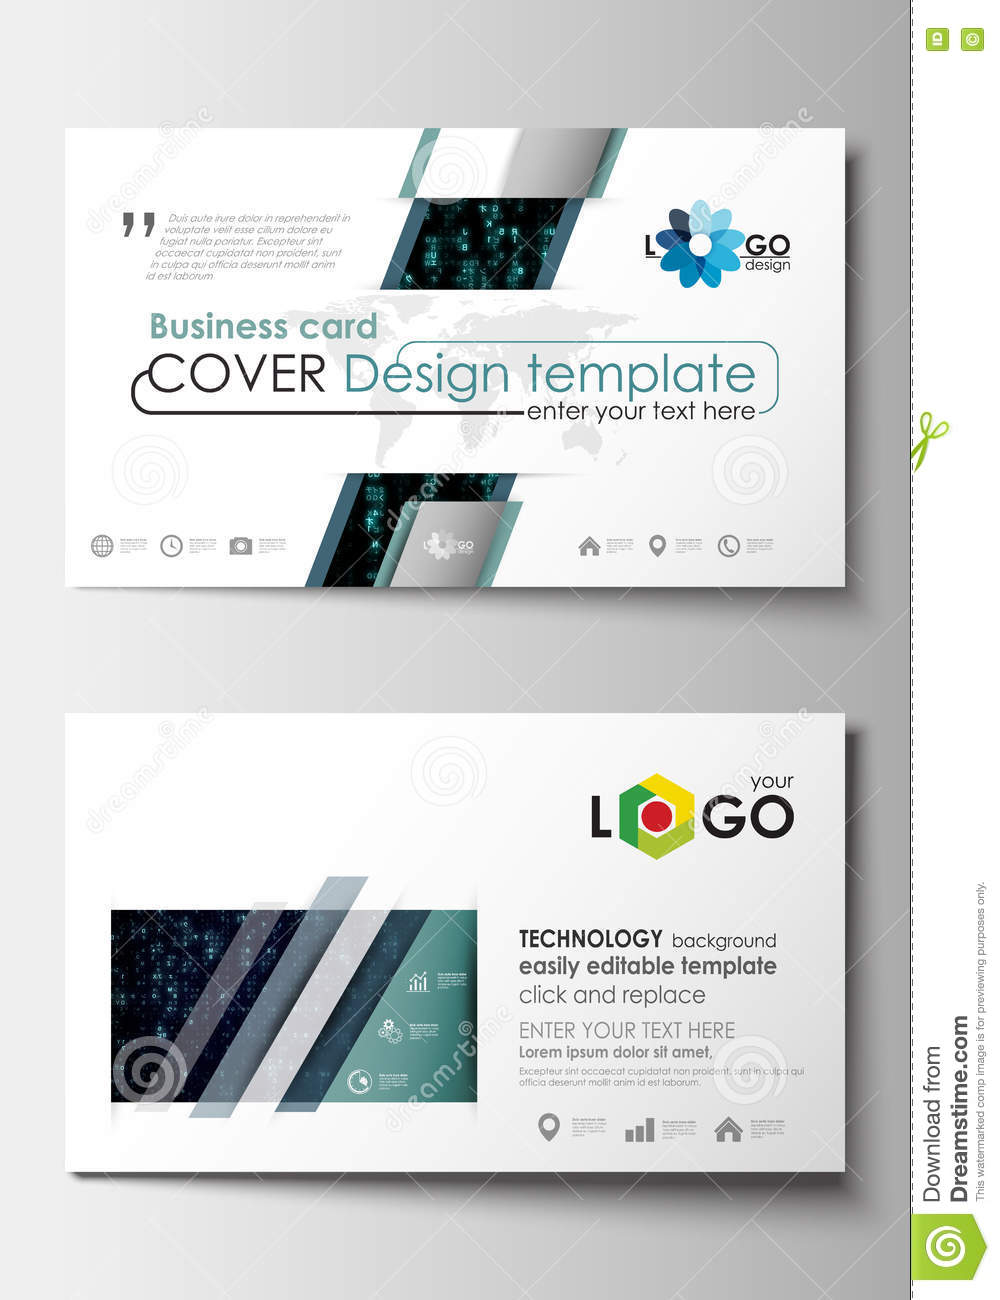 Business card templates cover design template easy editable blank download business card templates cover design template easy editable blank flat layout wajeb Image collections